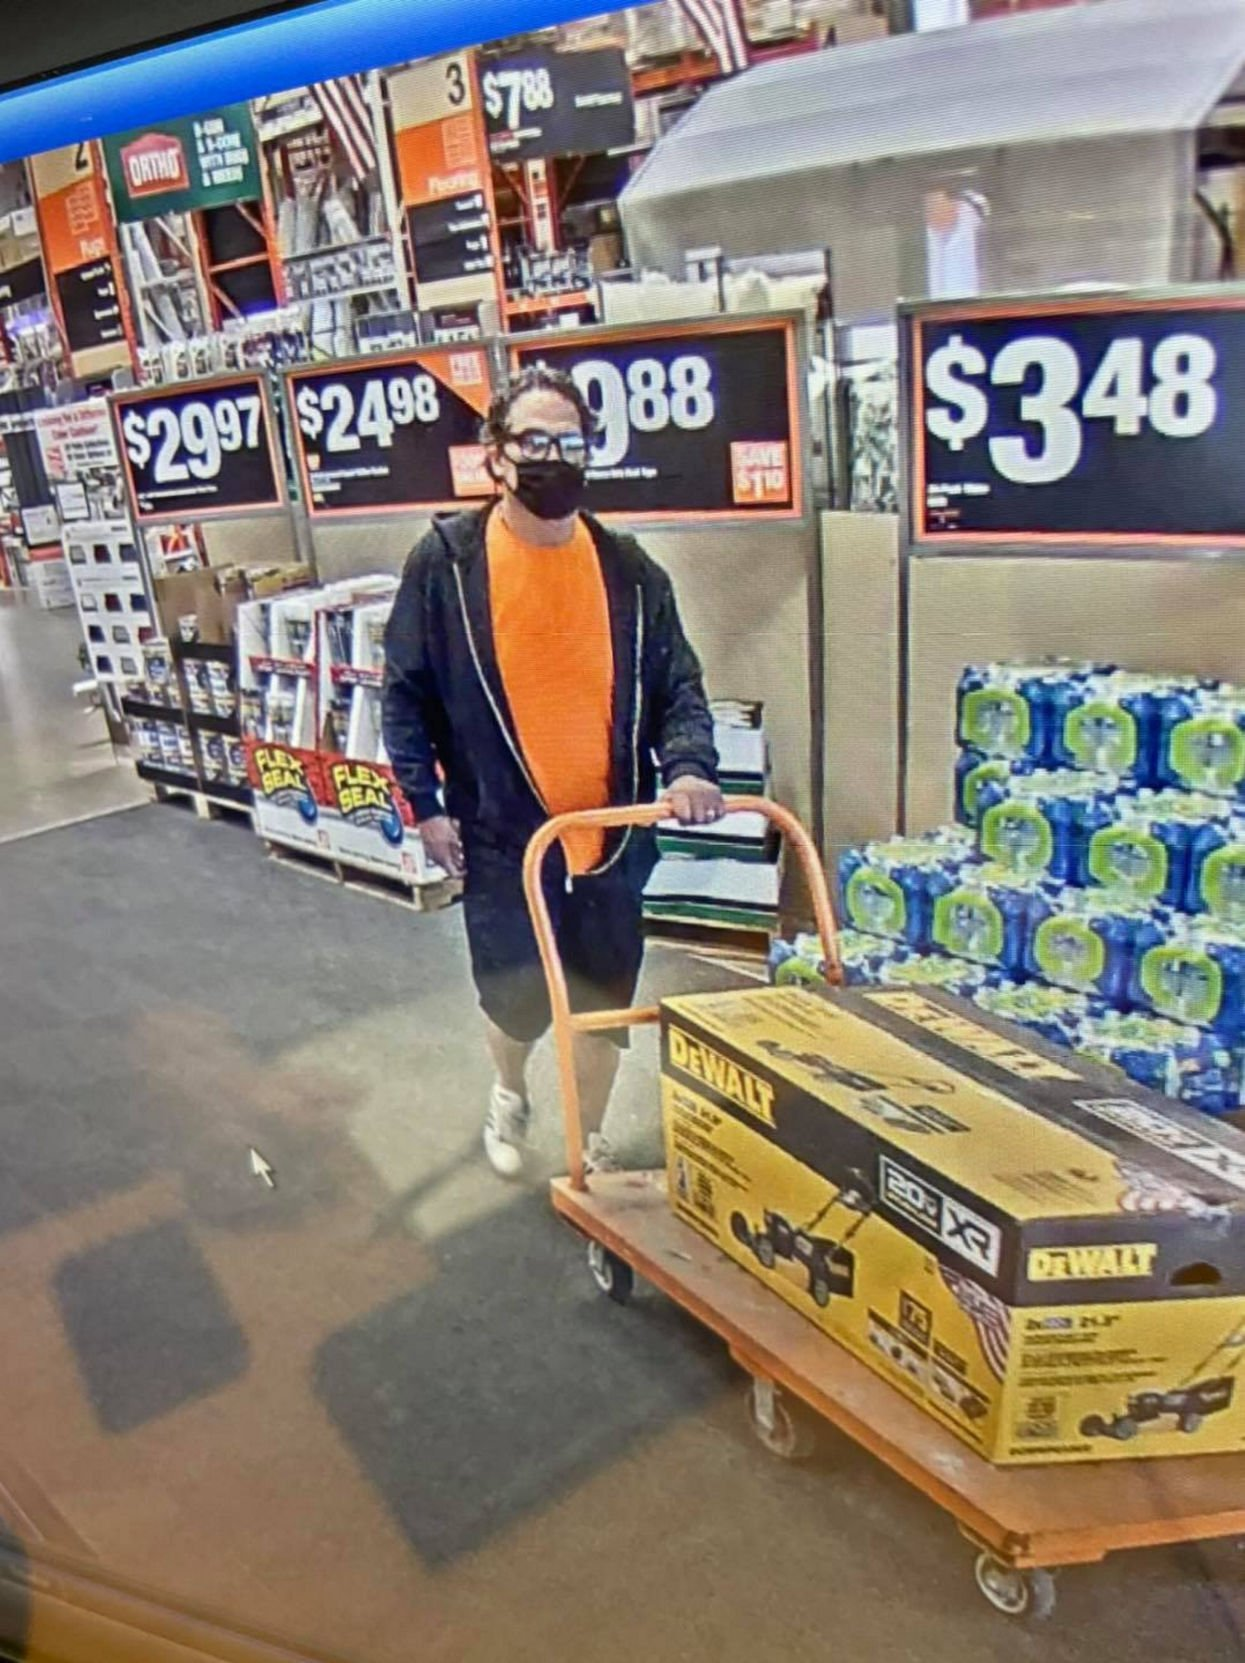 Man drew gun on loss prevention officer to steal lawnmower at Home Depot